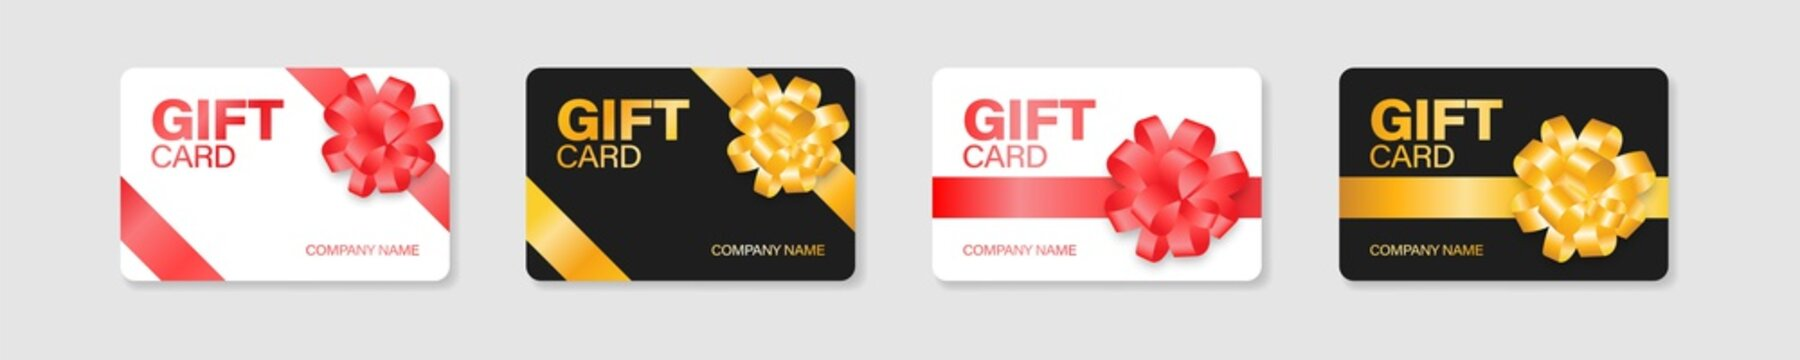 Gift card vector voucher mockup illustration, discount certificate plastic coupon collection.